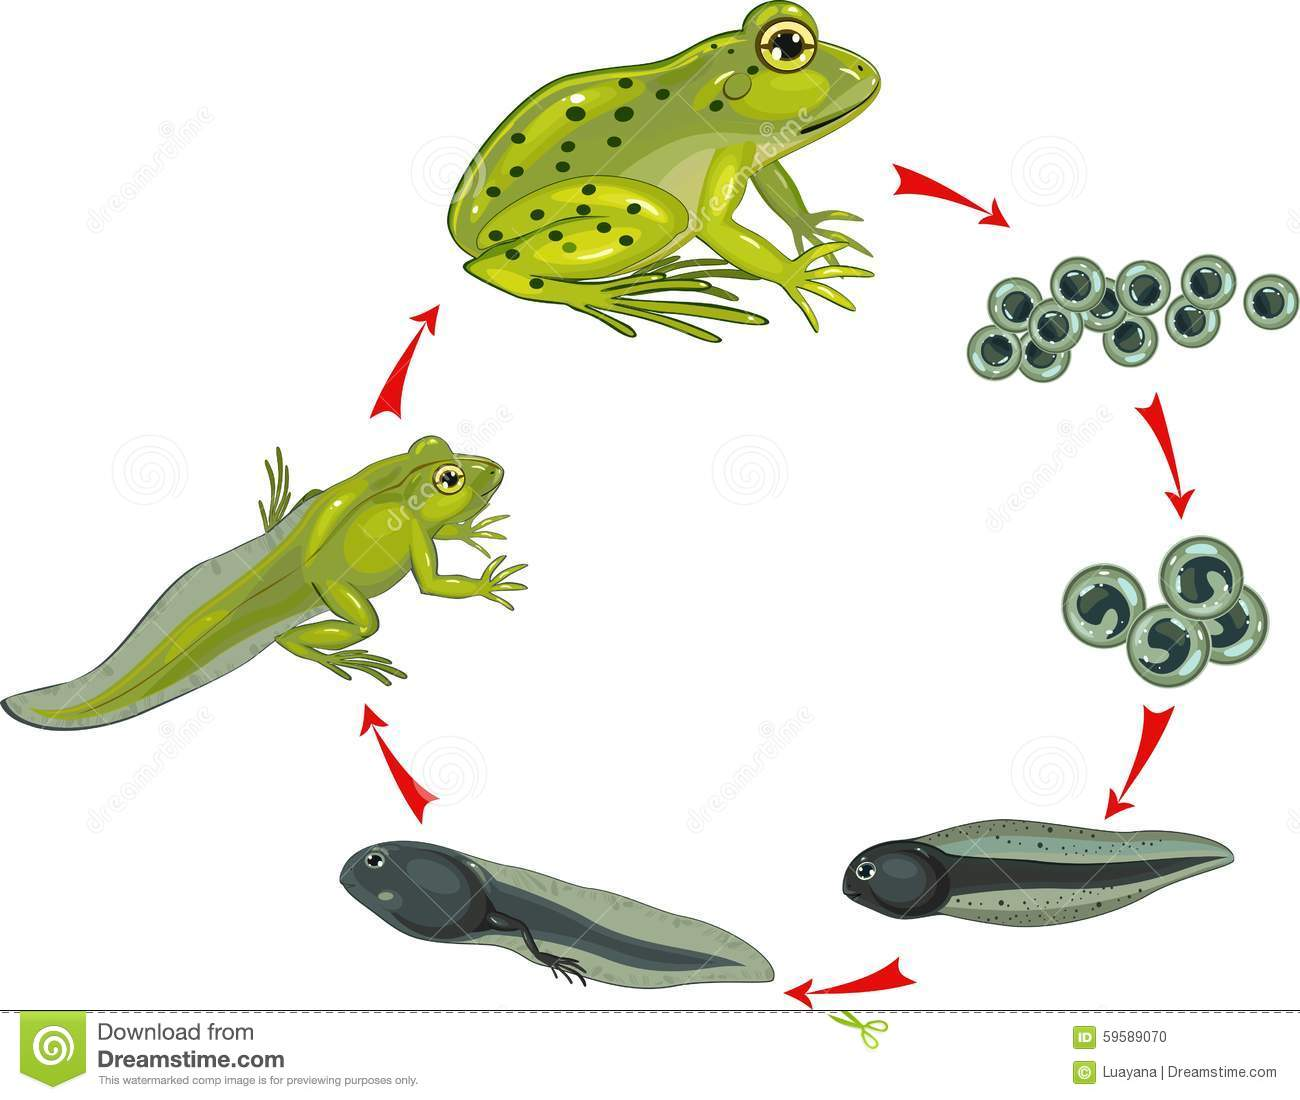 Frog life cycle clipart graphic library stock Frog Life Cycle. Amphibian Metamorphosis. Stock Vector - Image ... graphic library stock